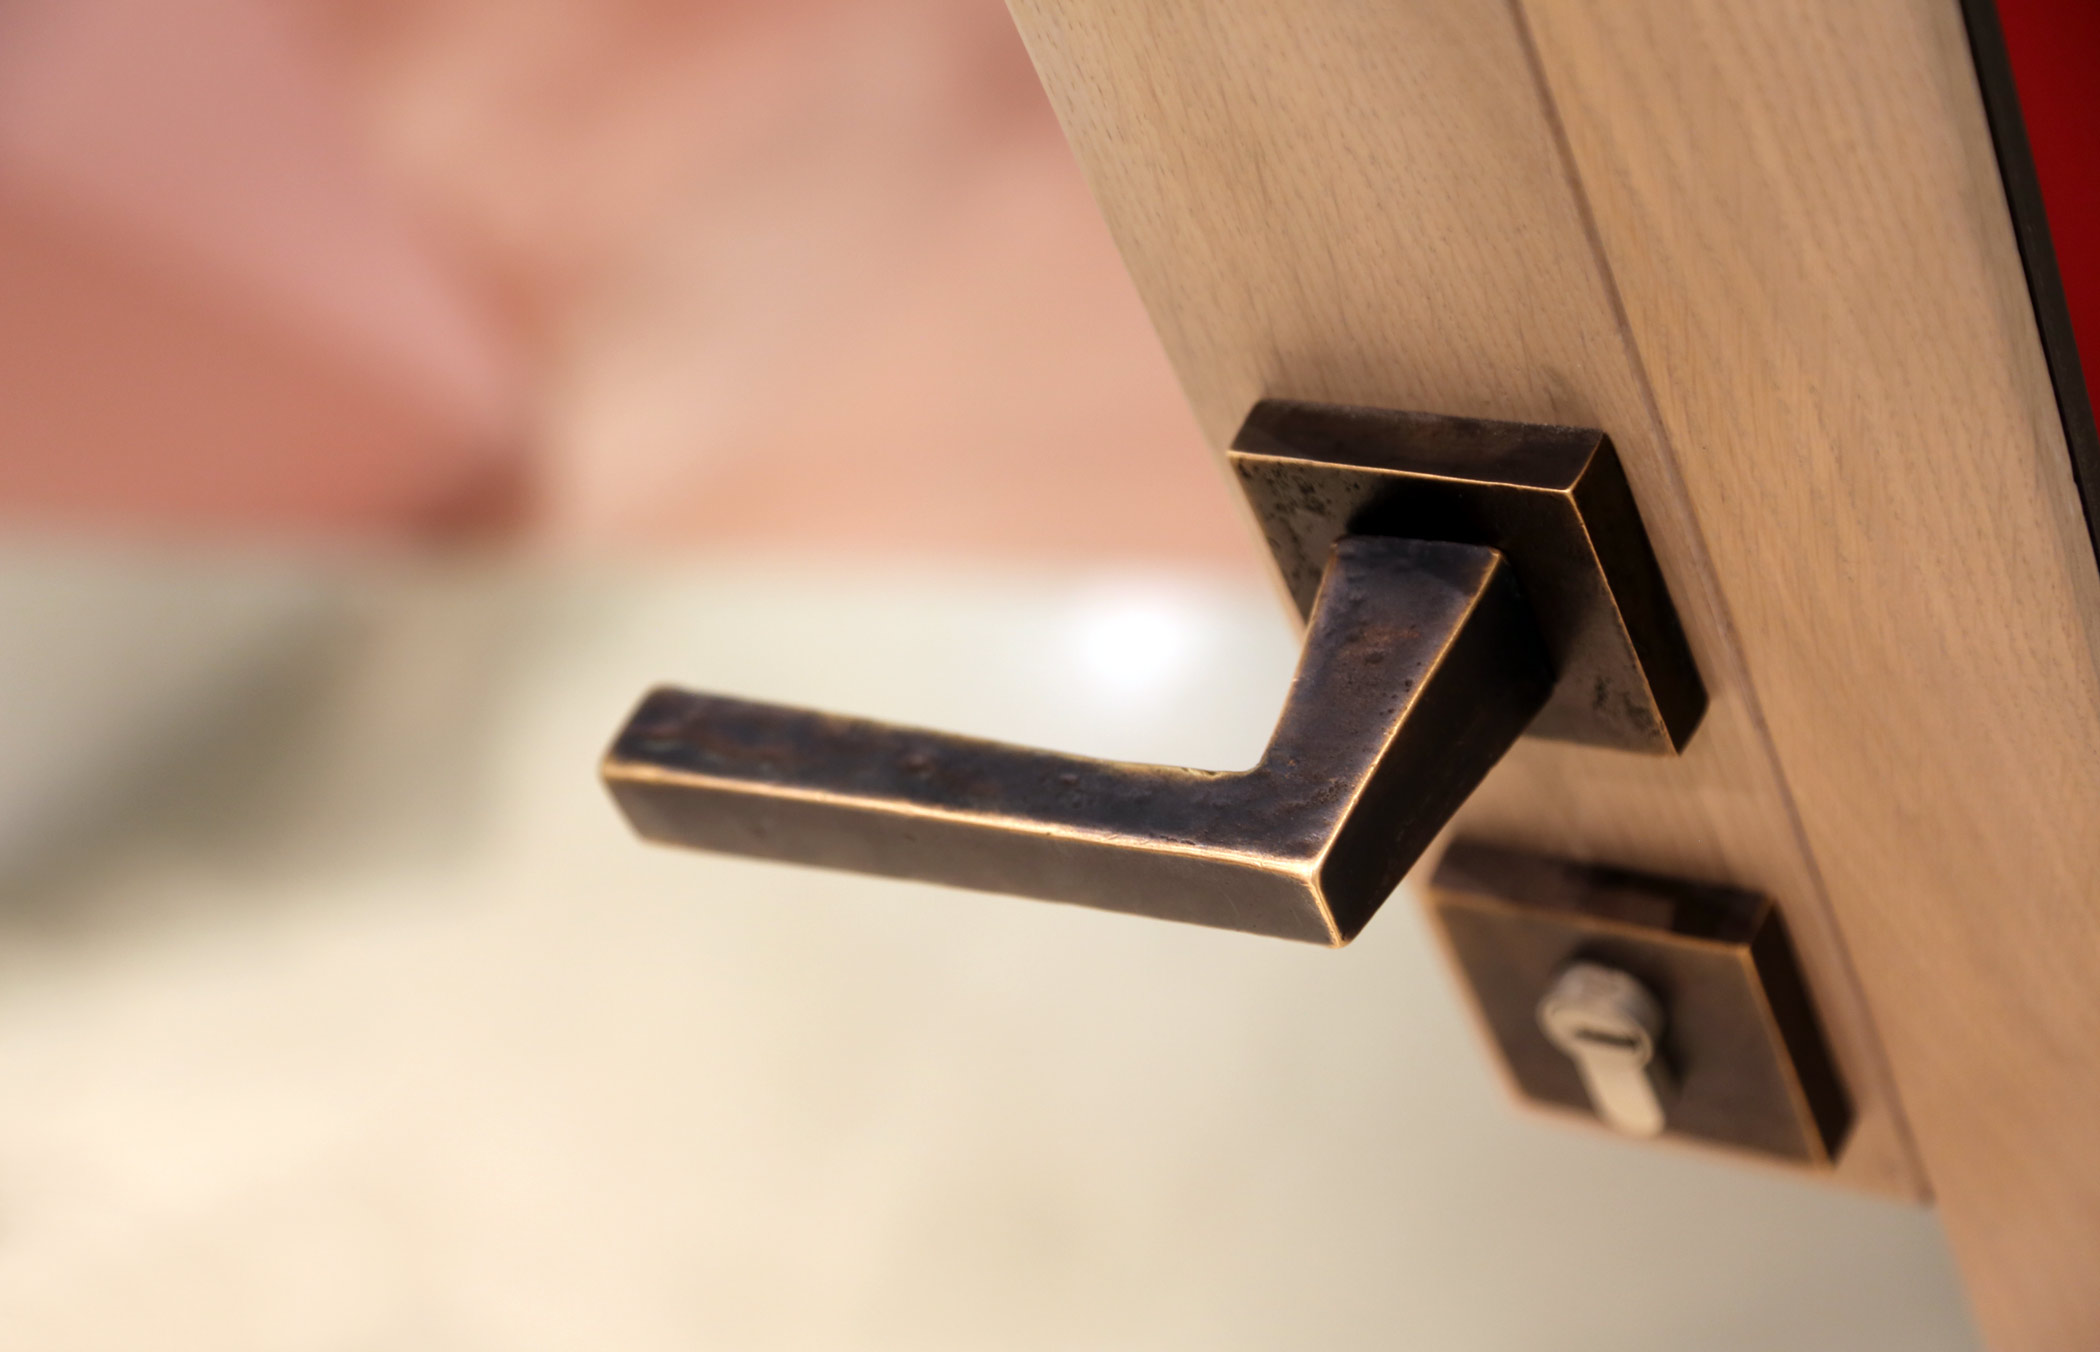 Detail of a Linea Vittoria handle, cover image